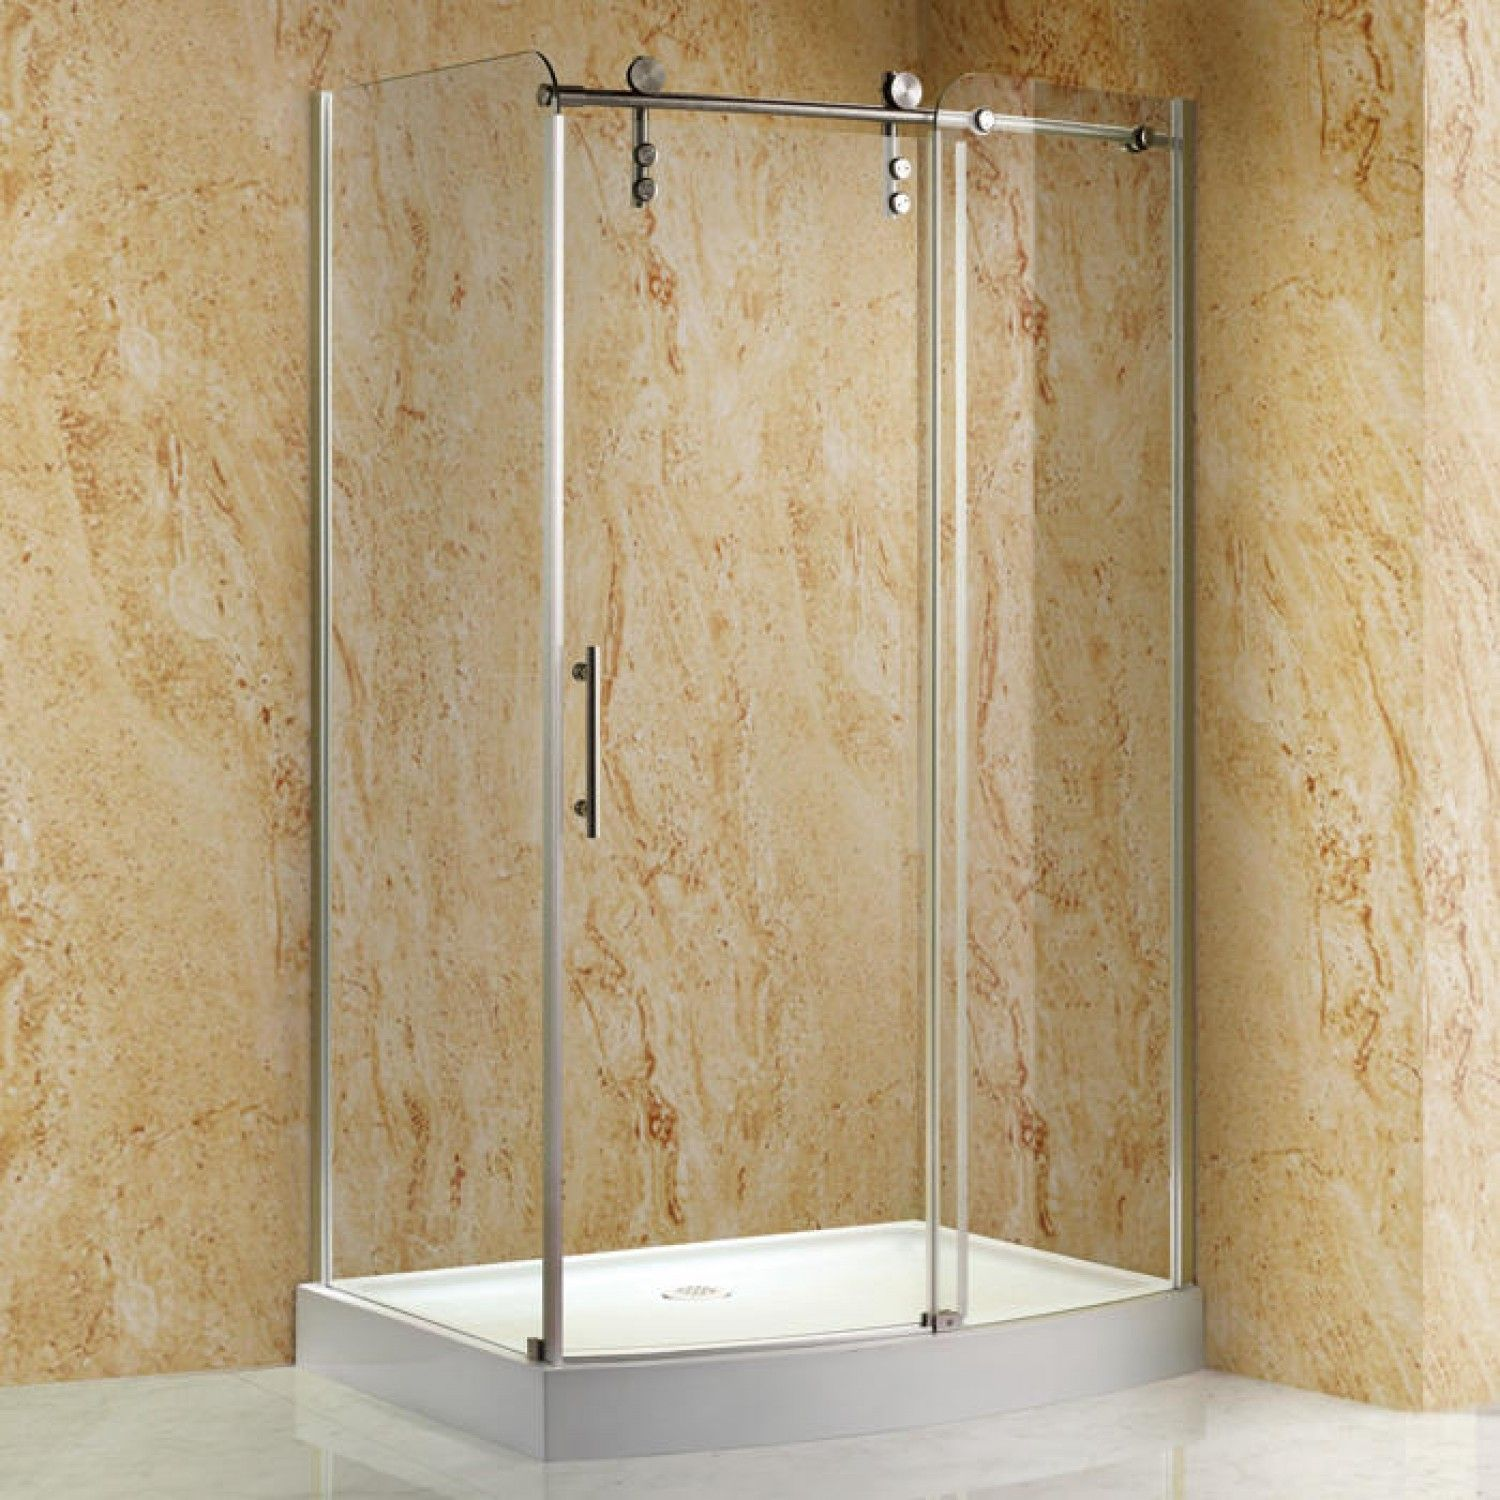 48 Rectangular Corner Shower Enclosure With Curved Front